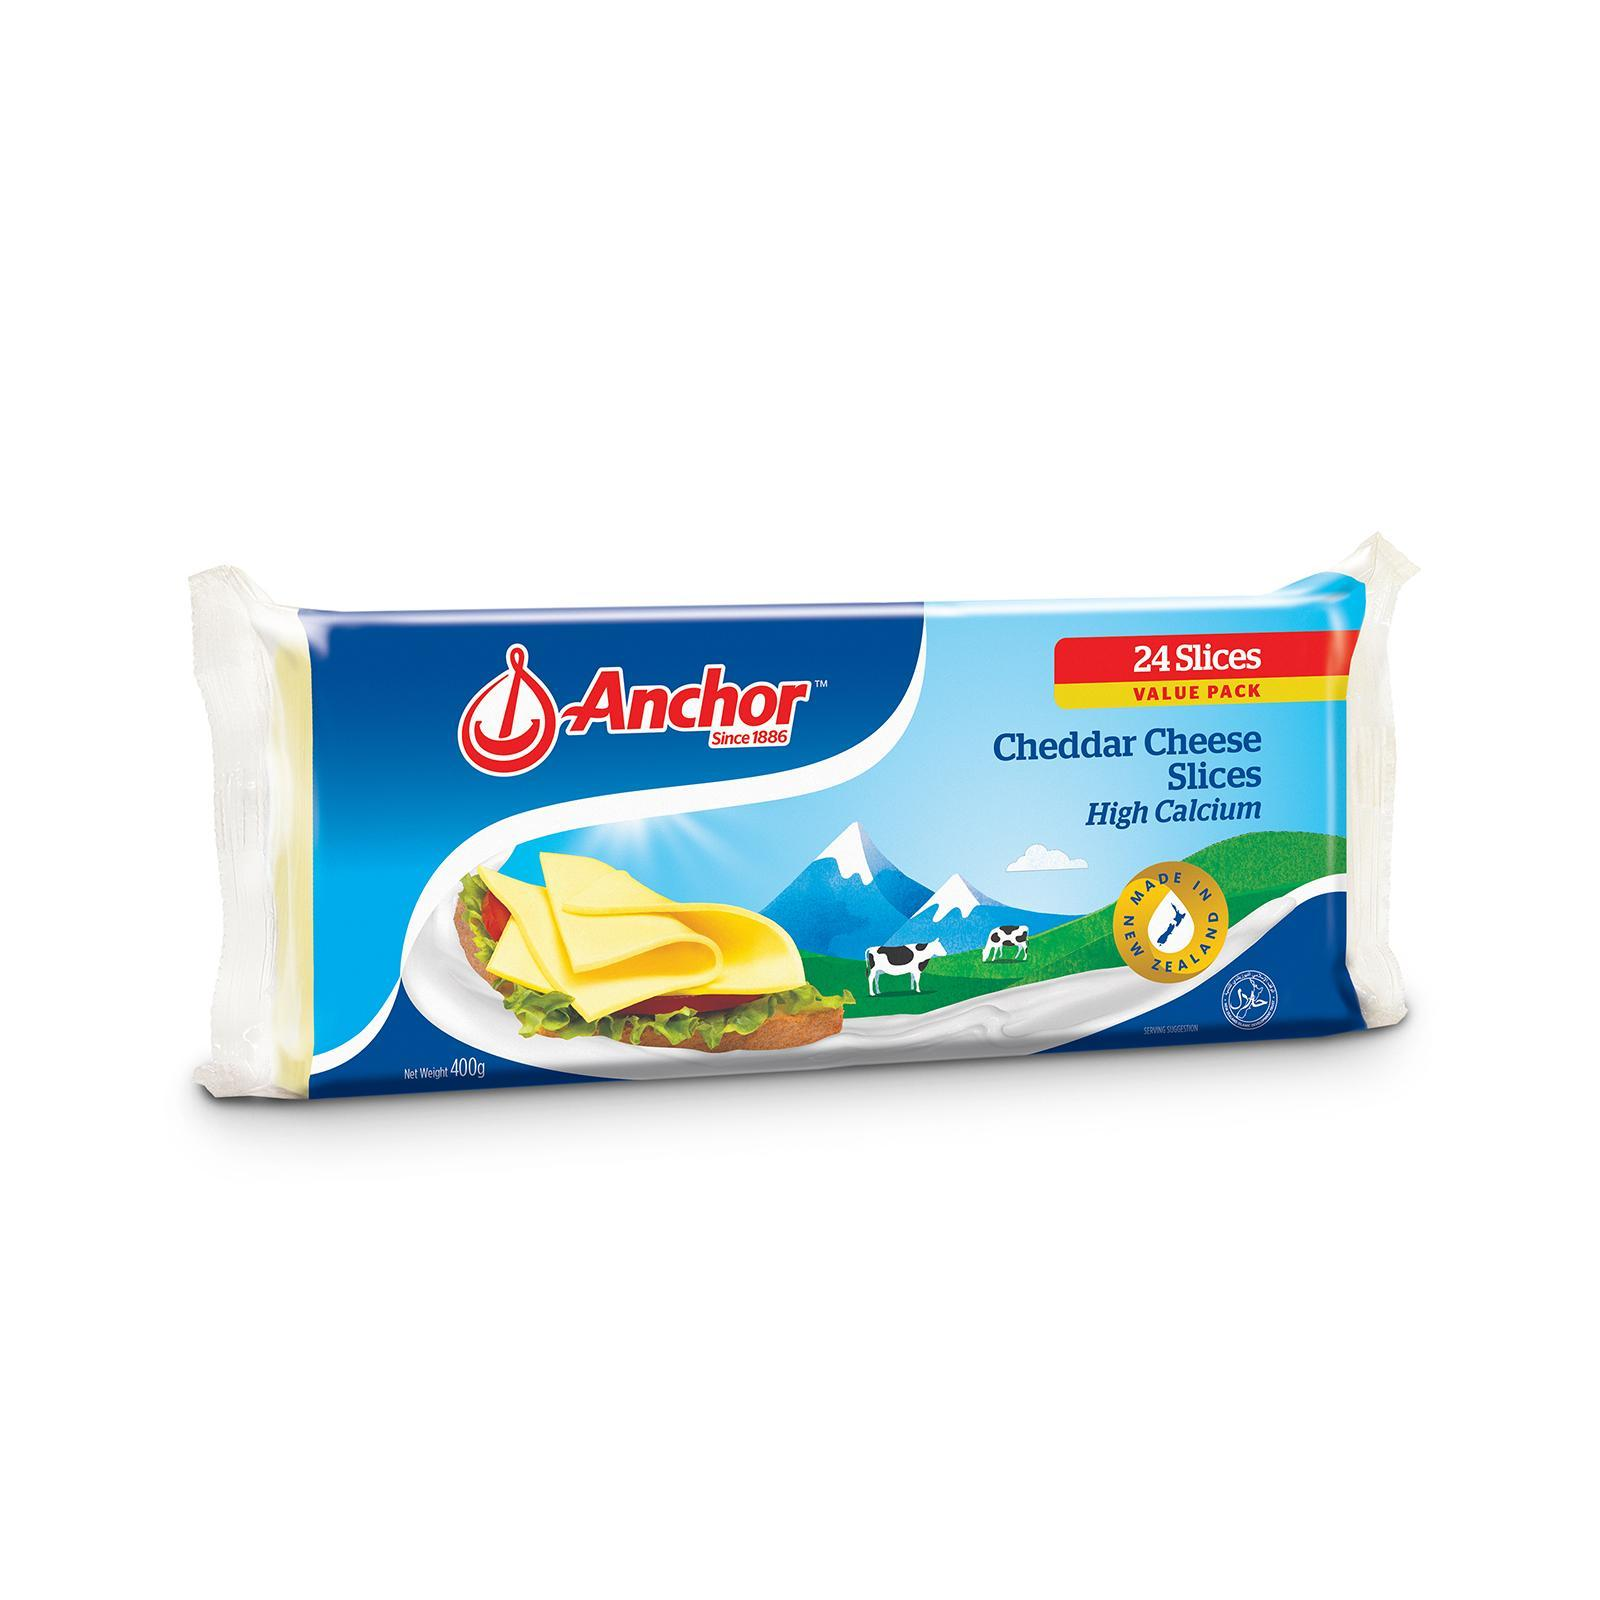 Anchor 24s Cheddar Cheese Slices 400G